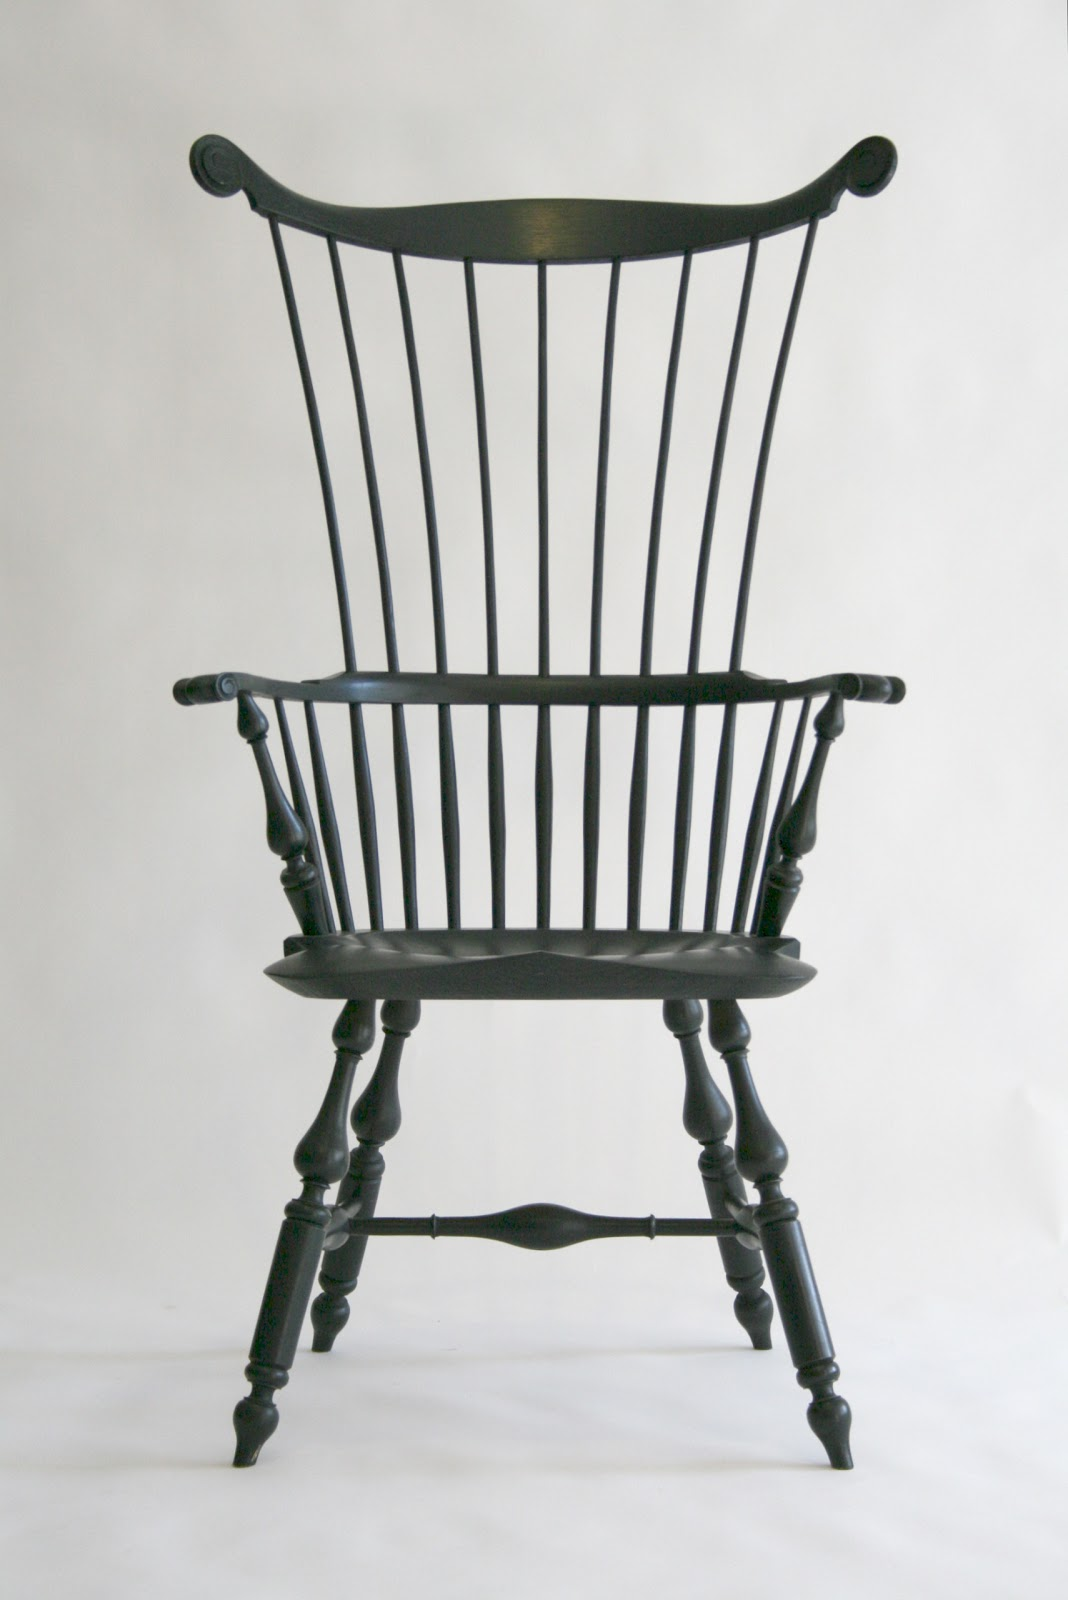 Windsor Arm Chairs ~ Caleb james chairmaker planemaker comb back windsor arm chair